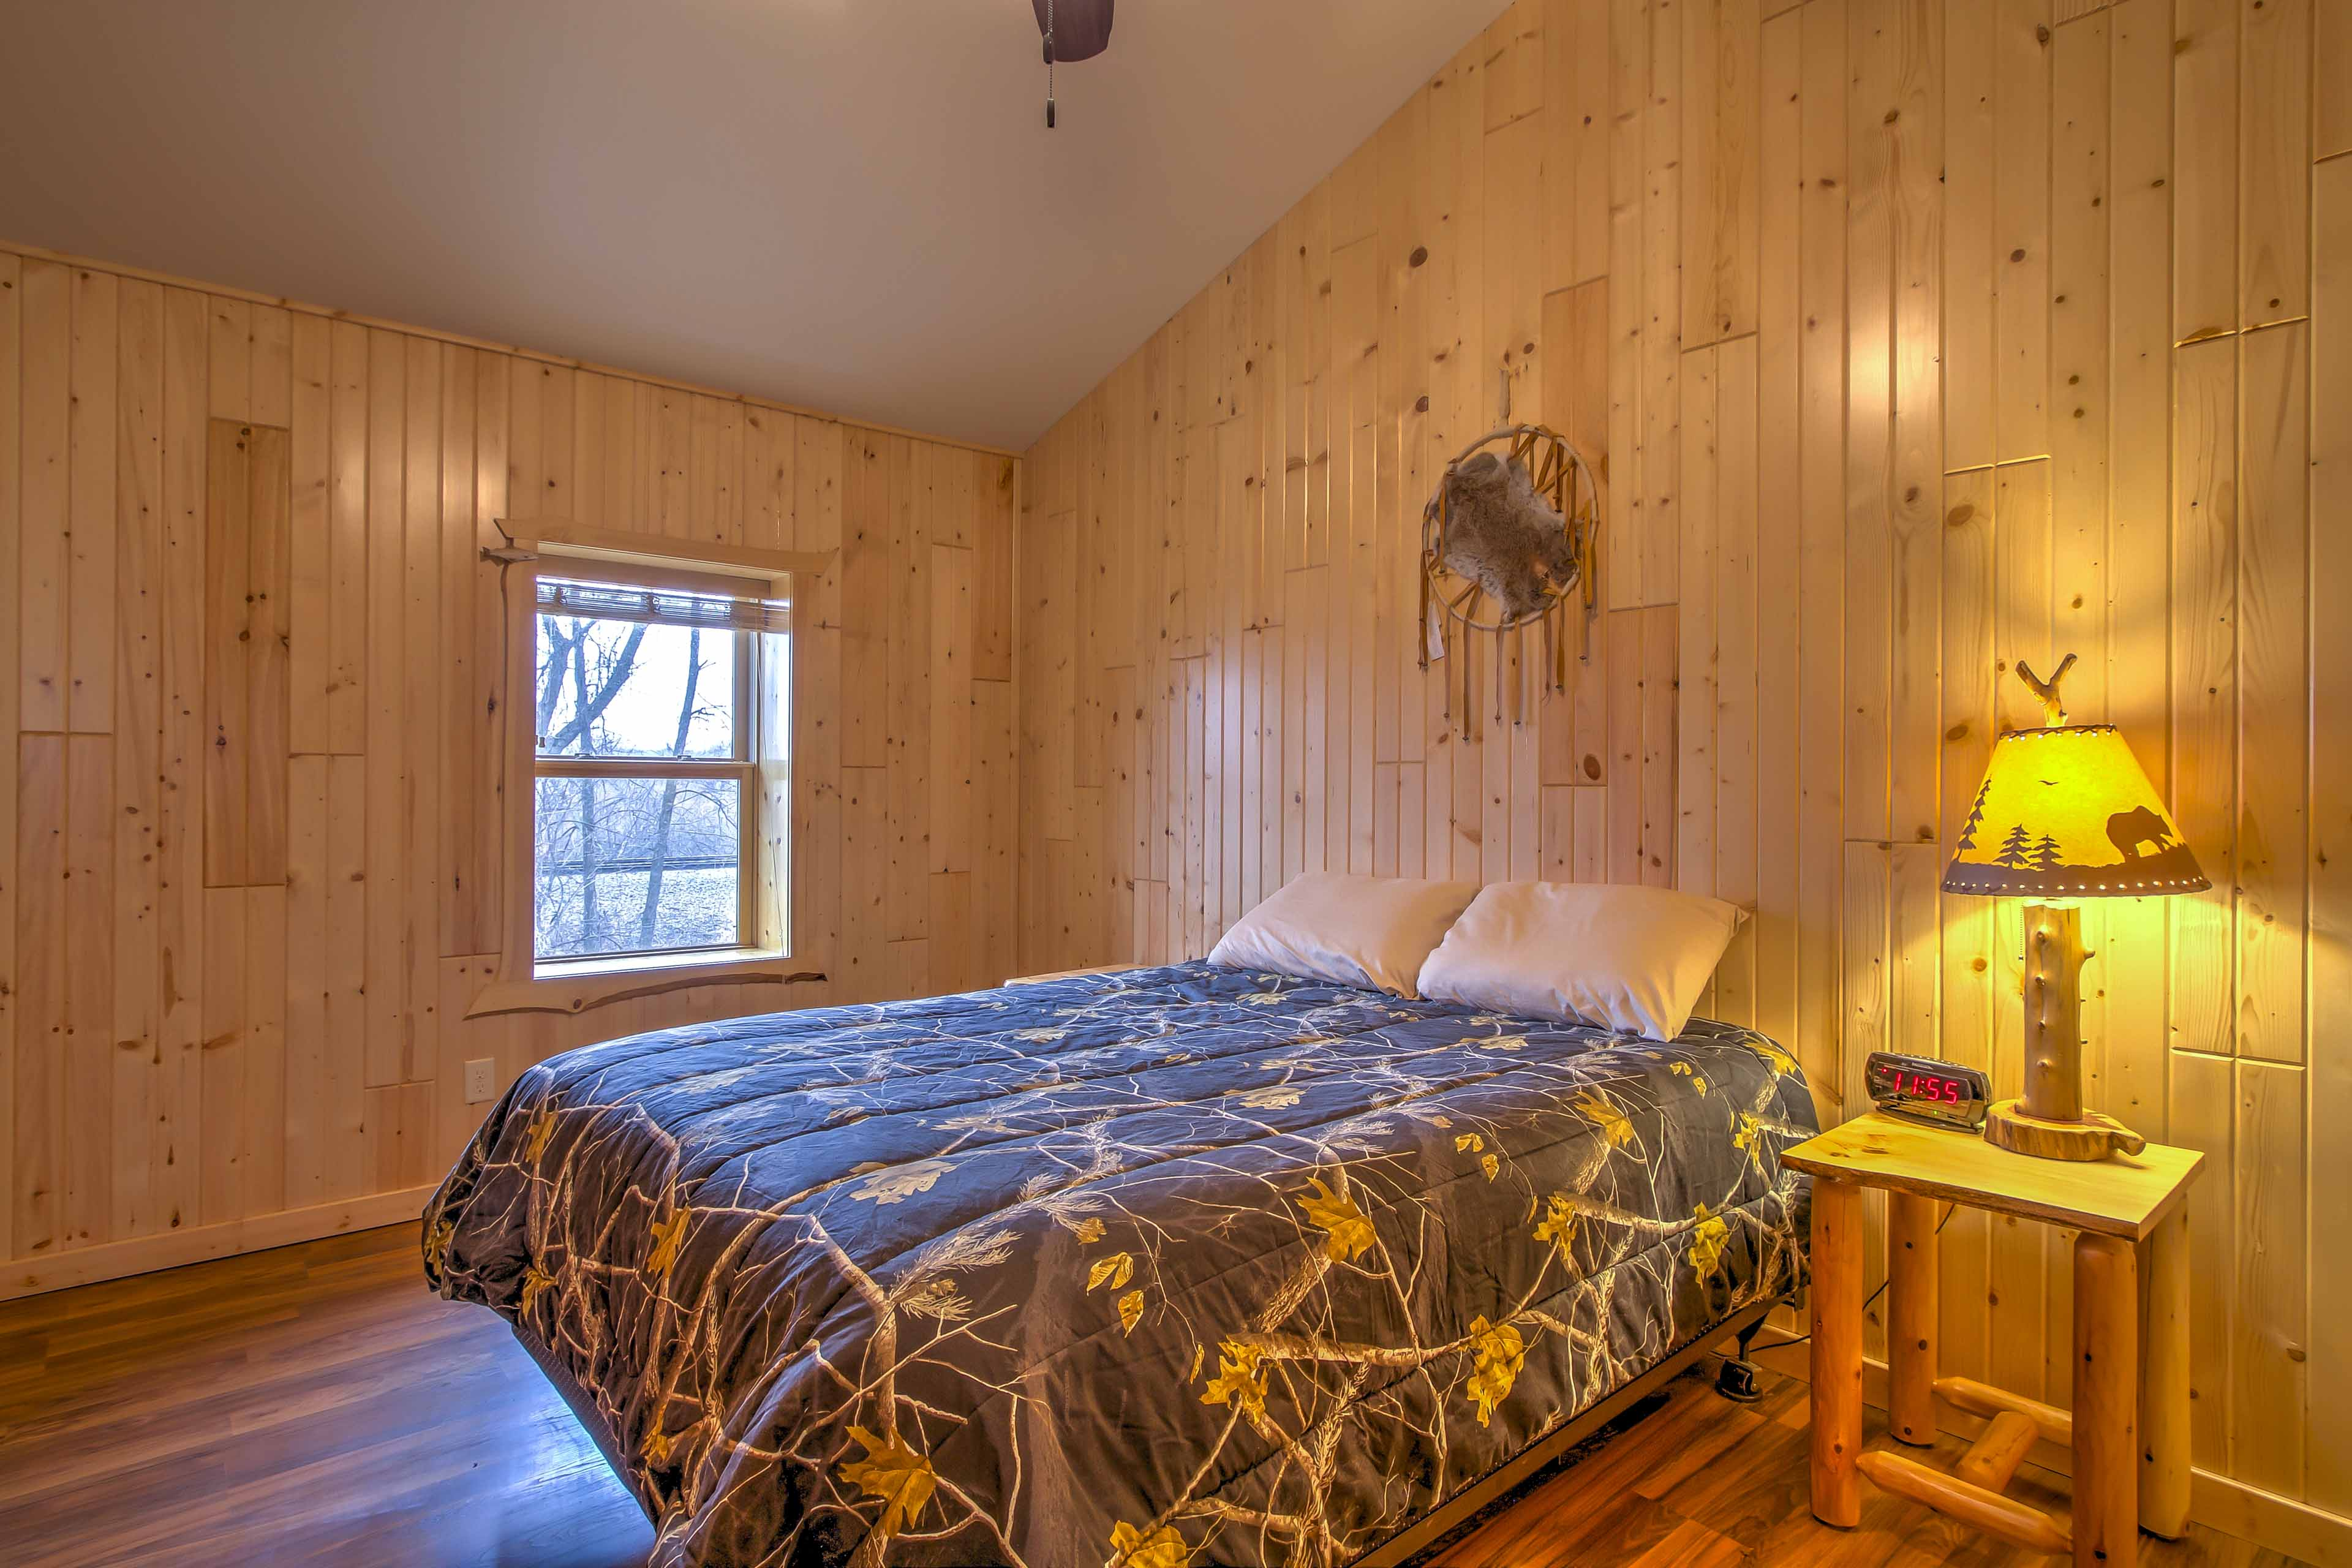 This bedroom features a queen-sized bed and simple mountain decor.